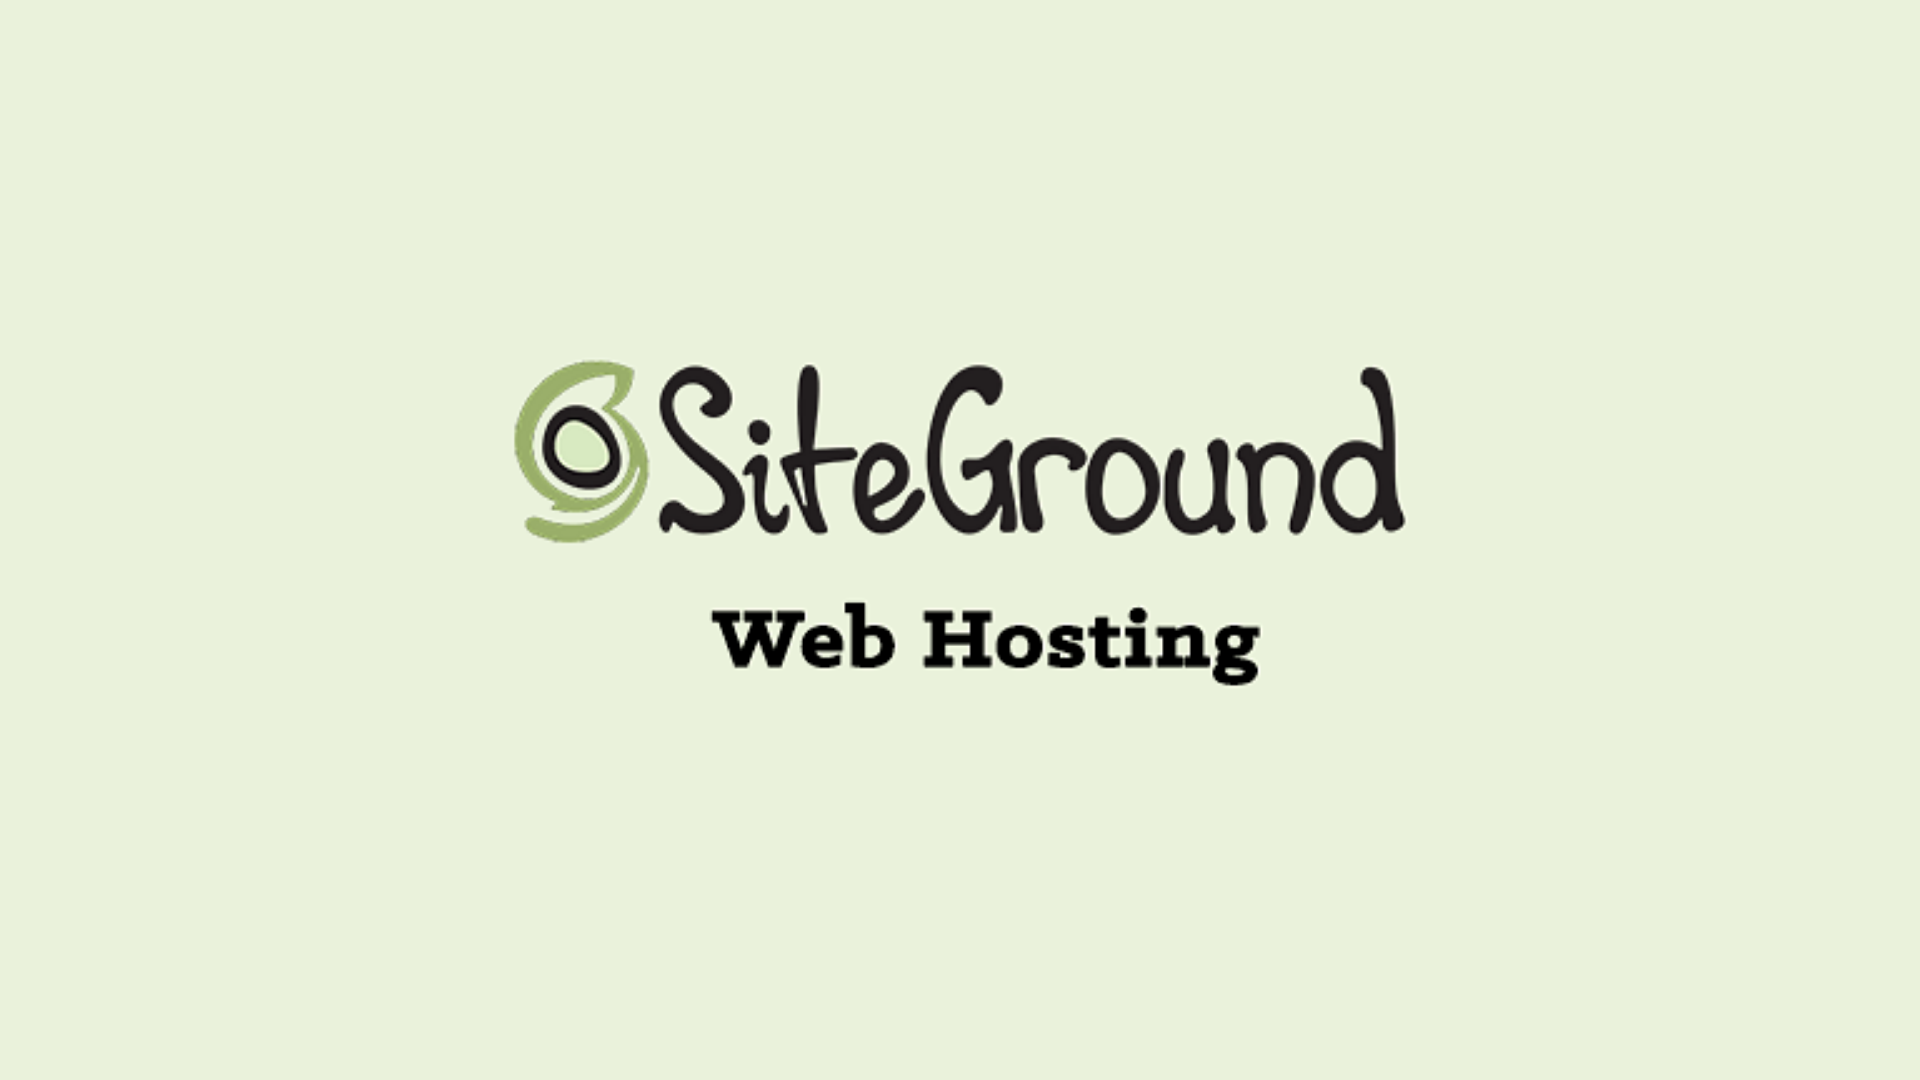 What is SiteGround?